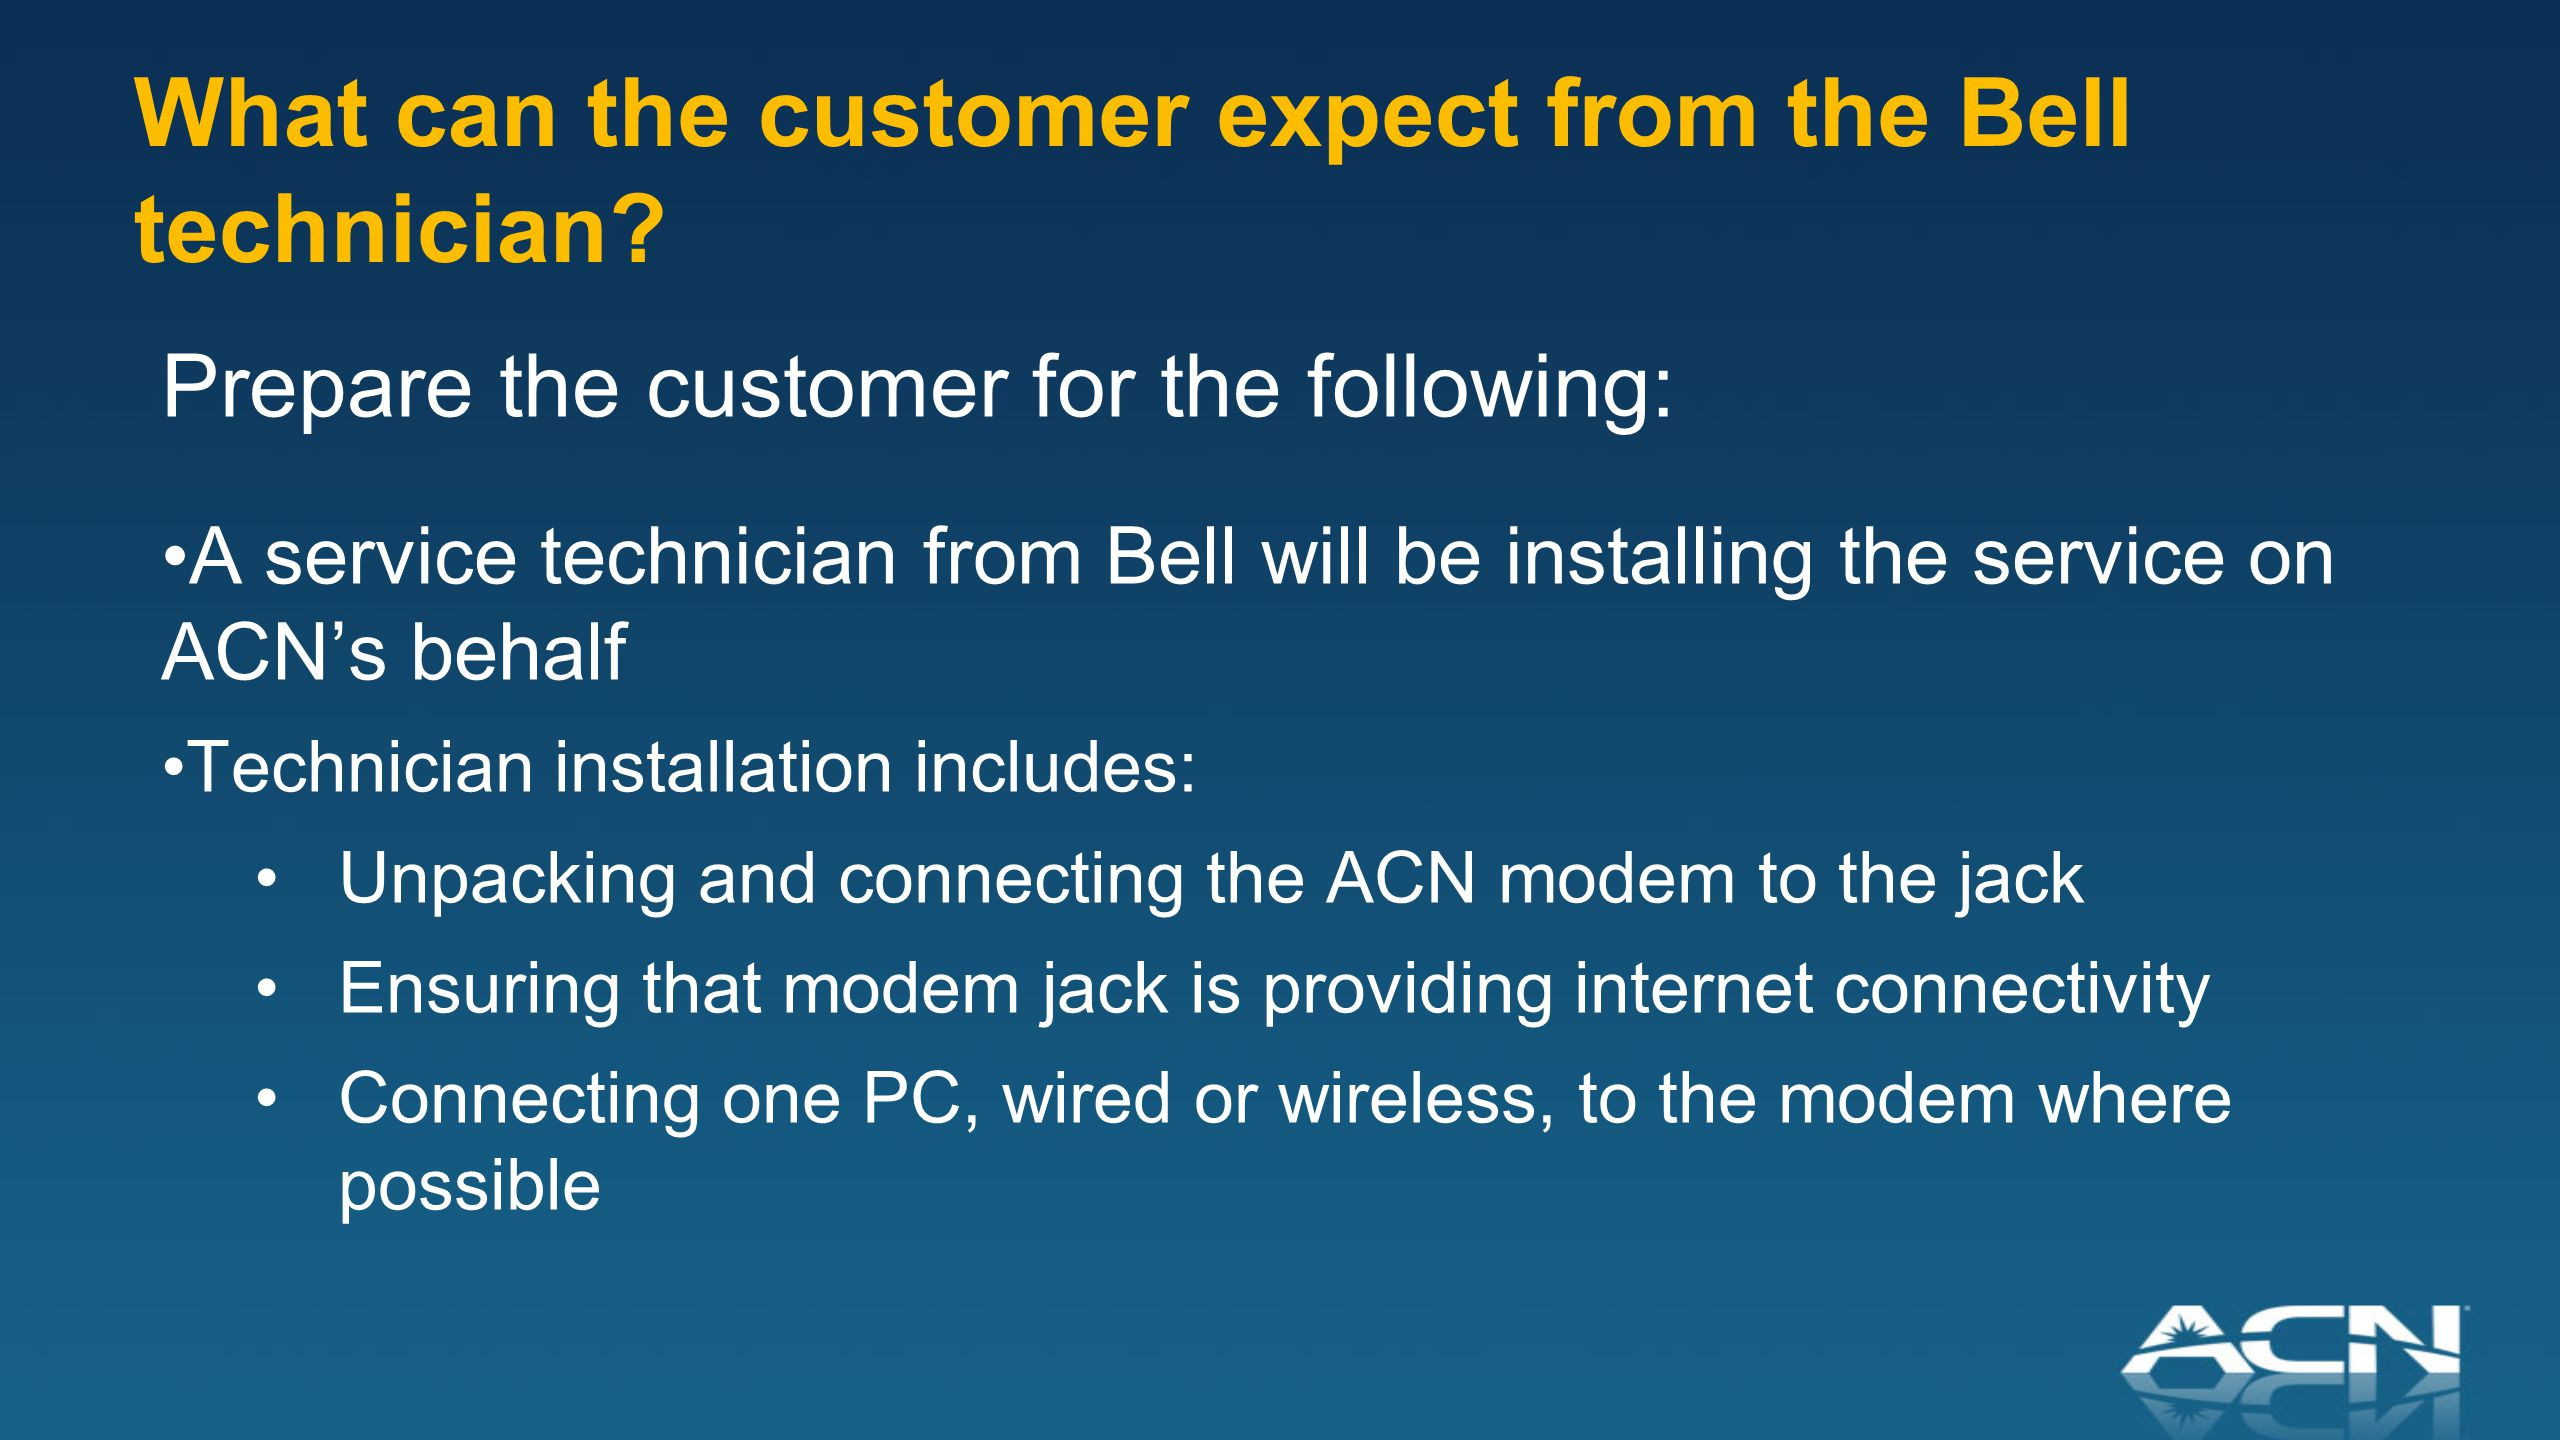 Prepare the customer for the following: A service technician from Bell will be installing the service on ACN's behalf Technician installation includes: Unpacking and connecting the ACN modem to the jack Ensuring that modem jack is providing internet connectivity Connecting one PC, wired or wireless, to the modem where possible What can the customer expect from the Bell technician